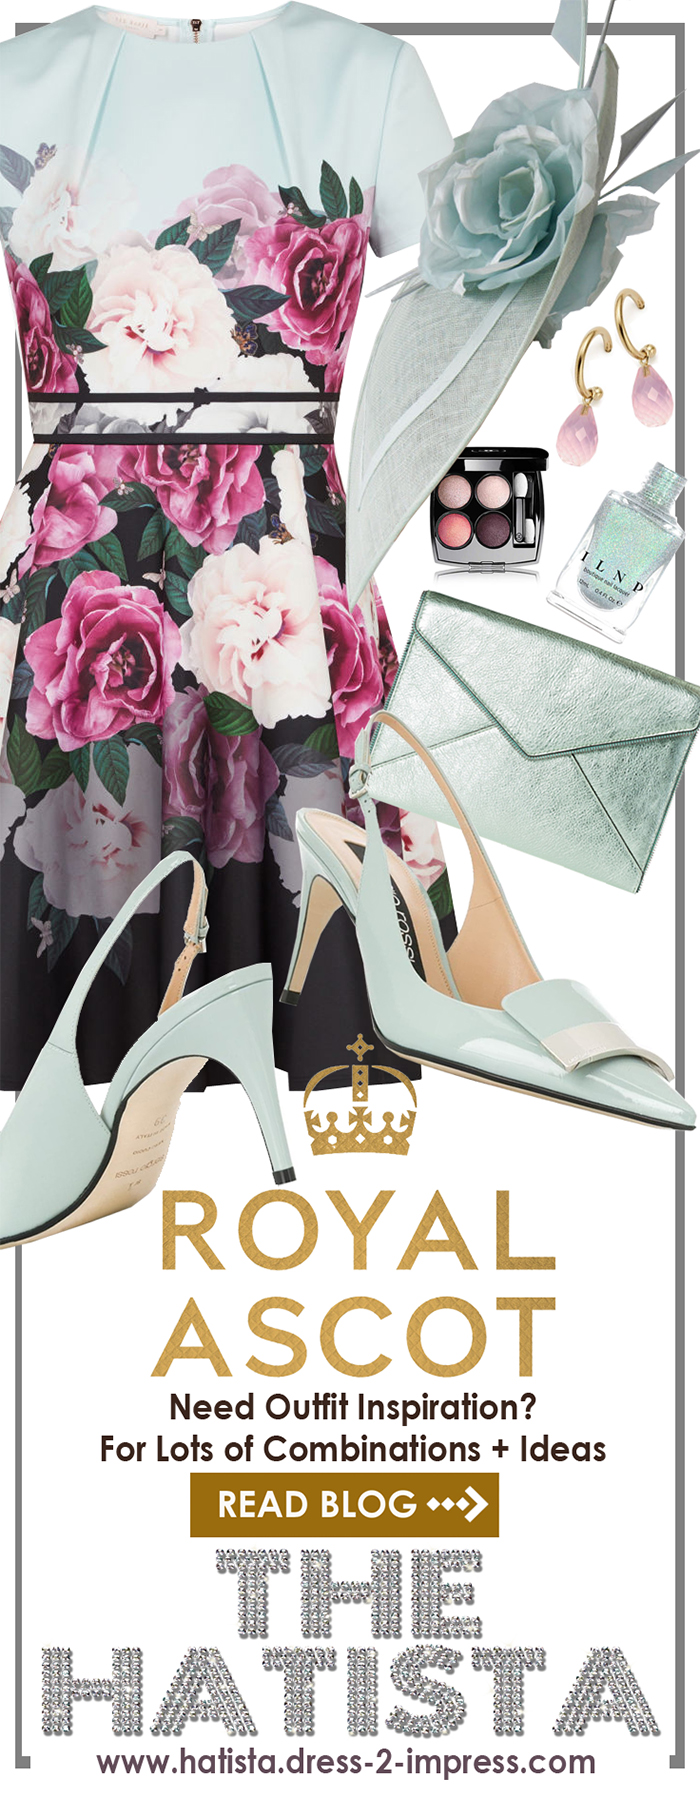 Royal Ascot outfit ideas. What to wear for Royal Ascot. Royal Ascot Style Guide. Royal Ascot outfit inspiration. Floral Royal Ascot dresses. Hats for Royal Ascot. #royalascot #ootd #outfitideas